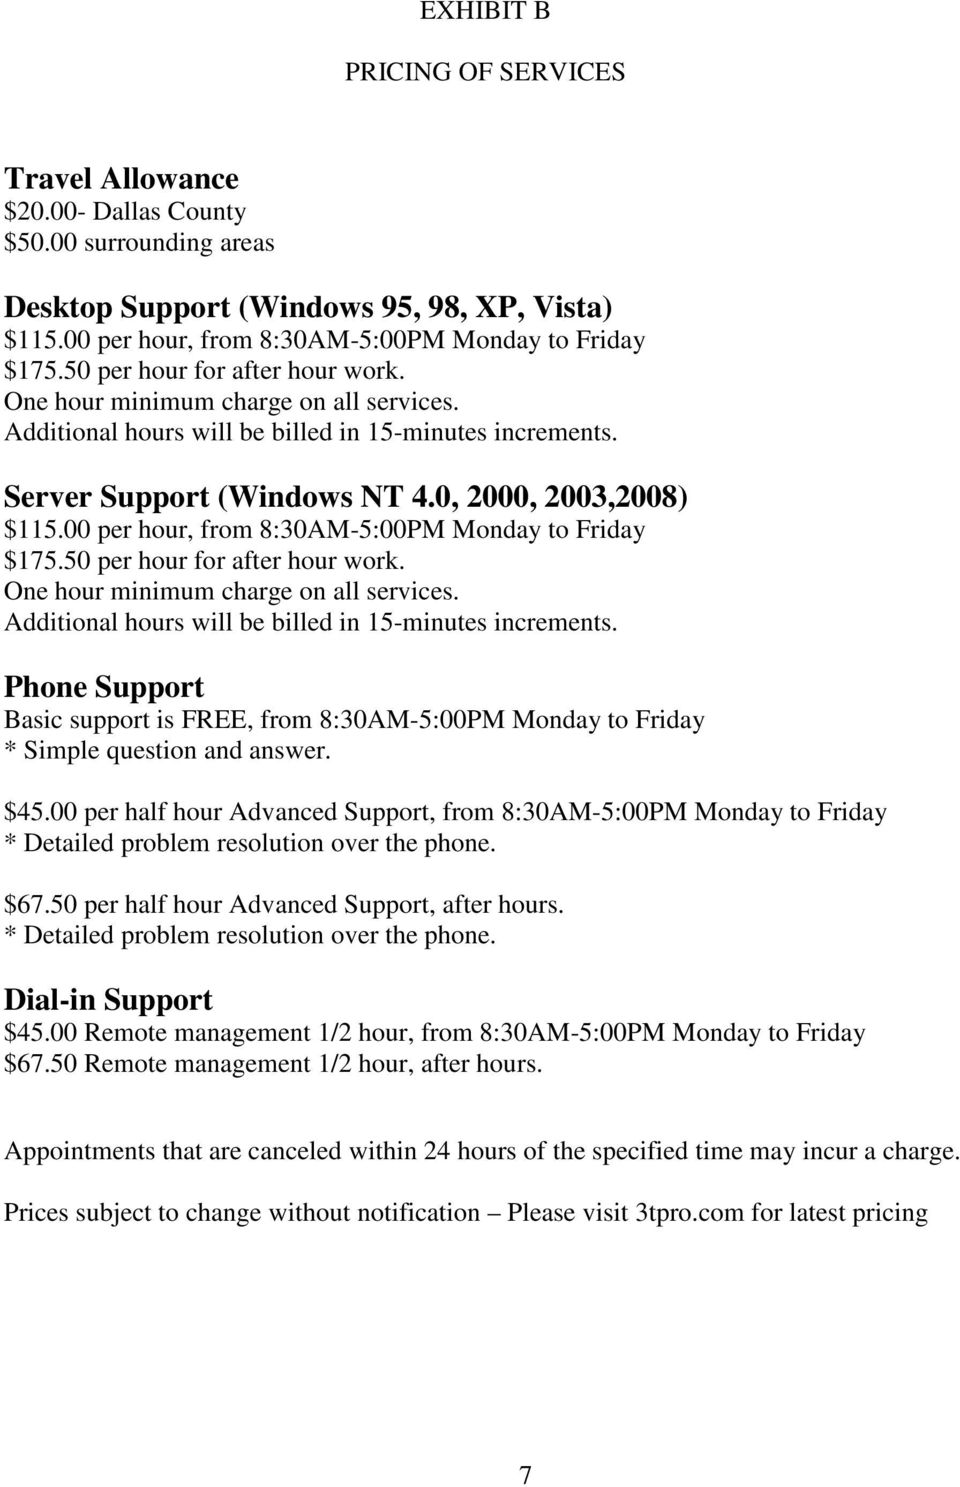 Server Support (Windows NT 4.0, 2000, 2003,2008) $115. Phone Support Basic support is FREE, from 8:30AM-5:00PM Monday to Friday * Simple question and answer. $45.